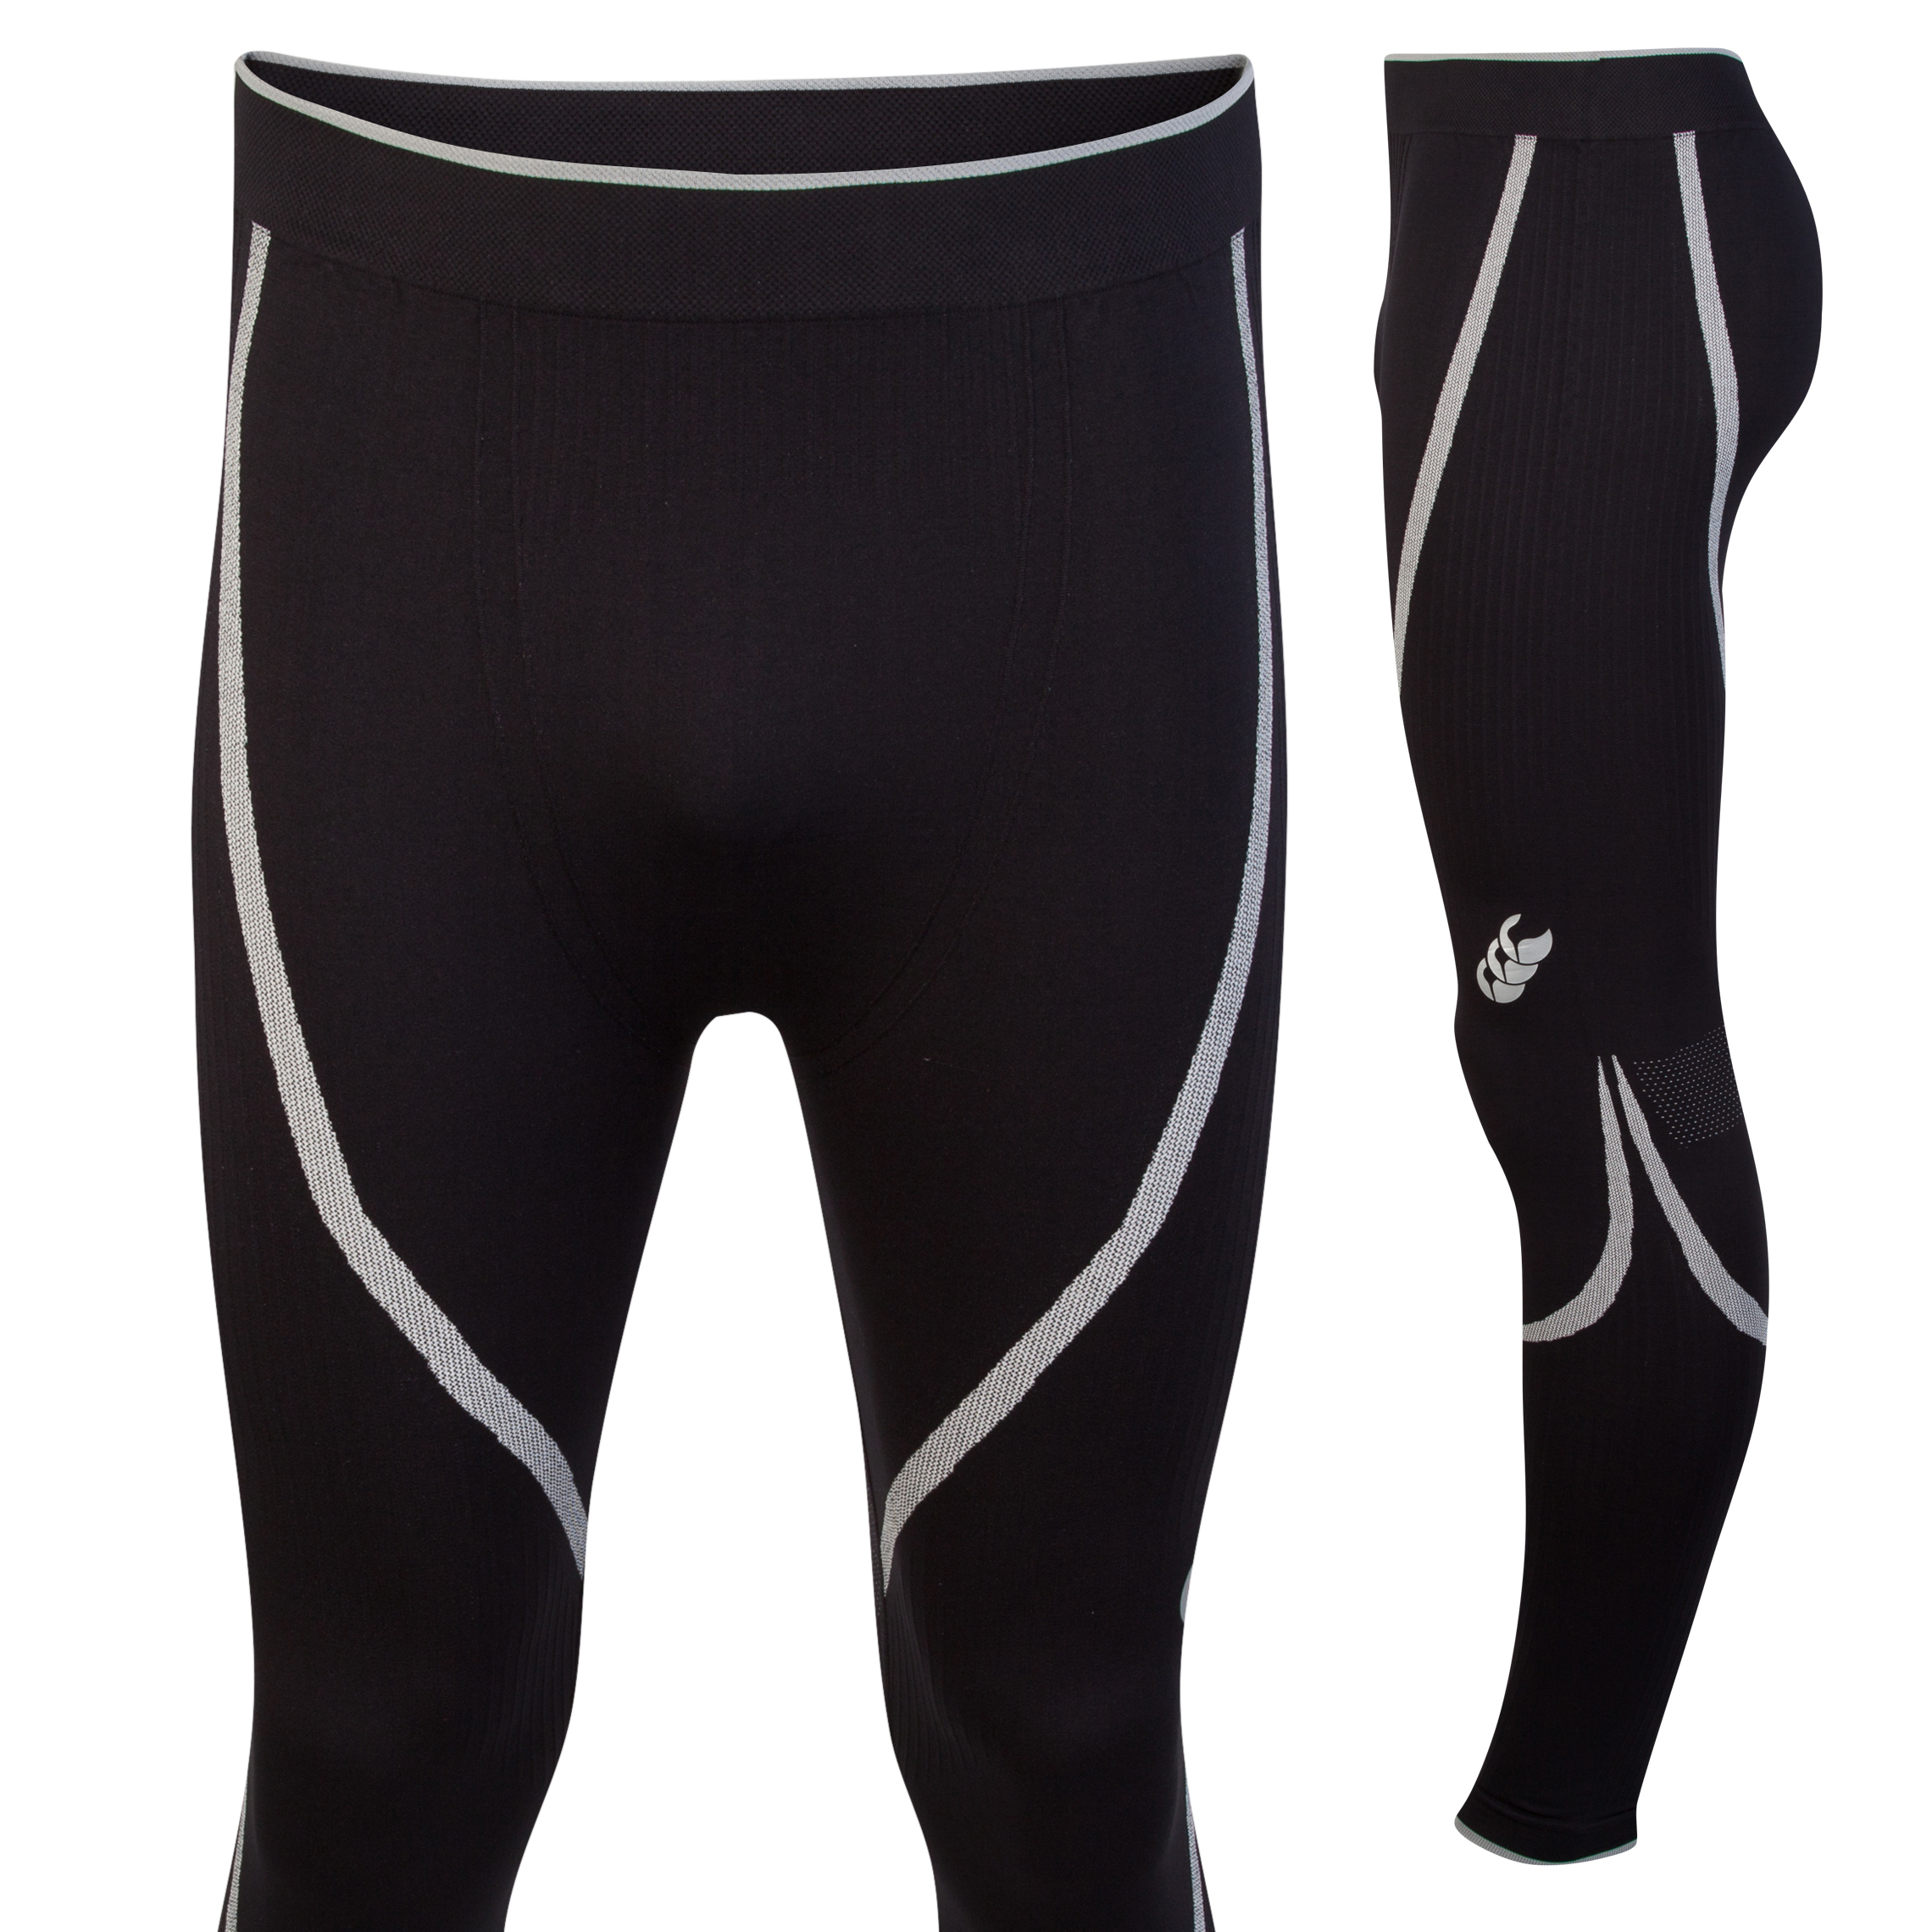 Canterbury iD Baselayer Legging - Black